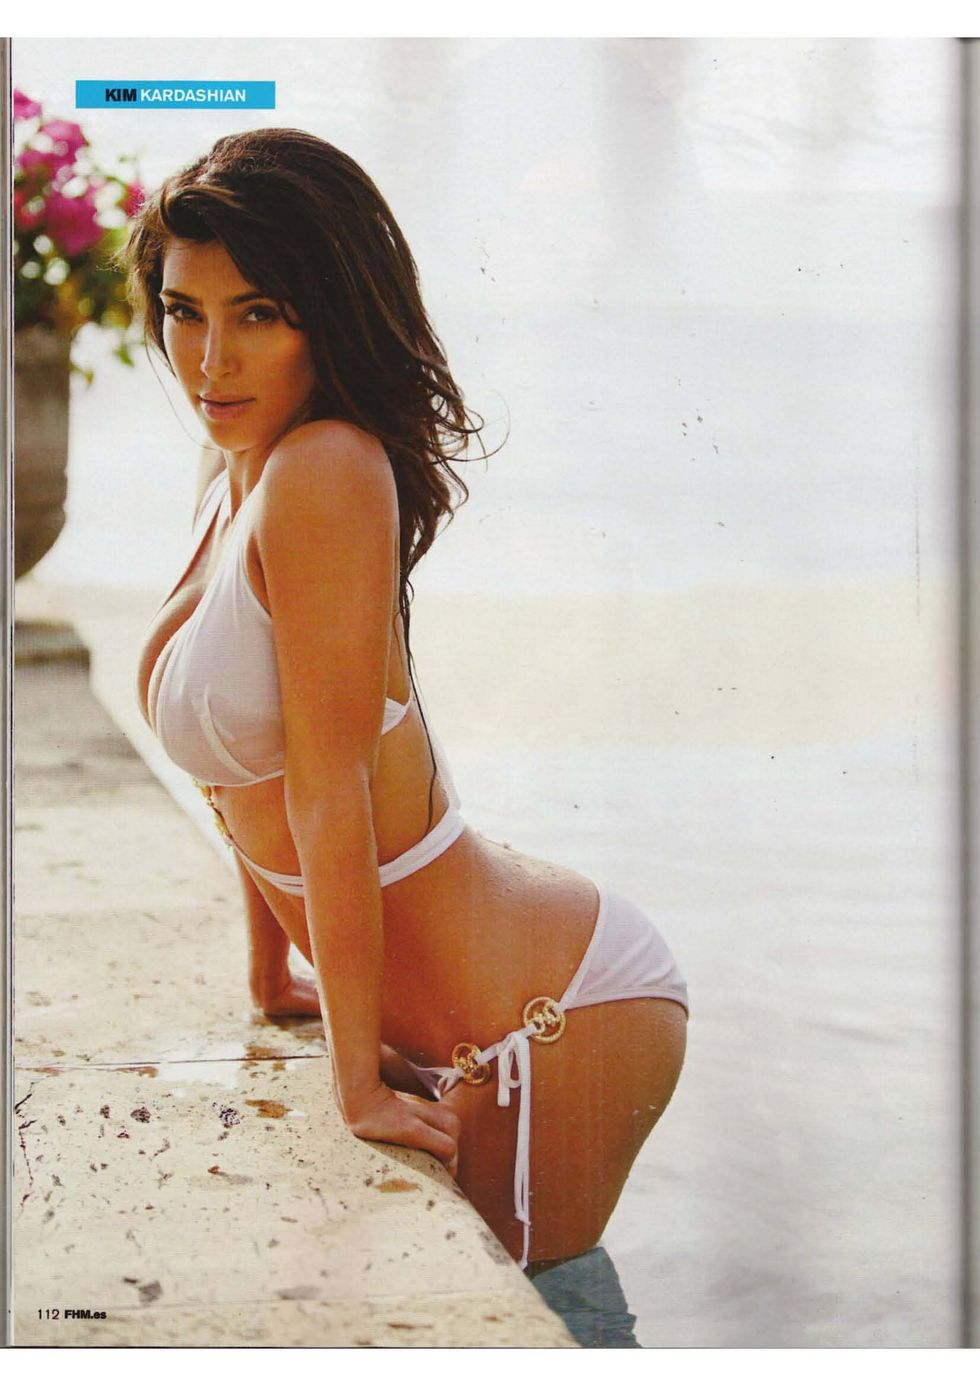 kim-kardashian-in-fhm-spain-03